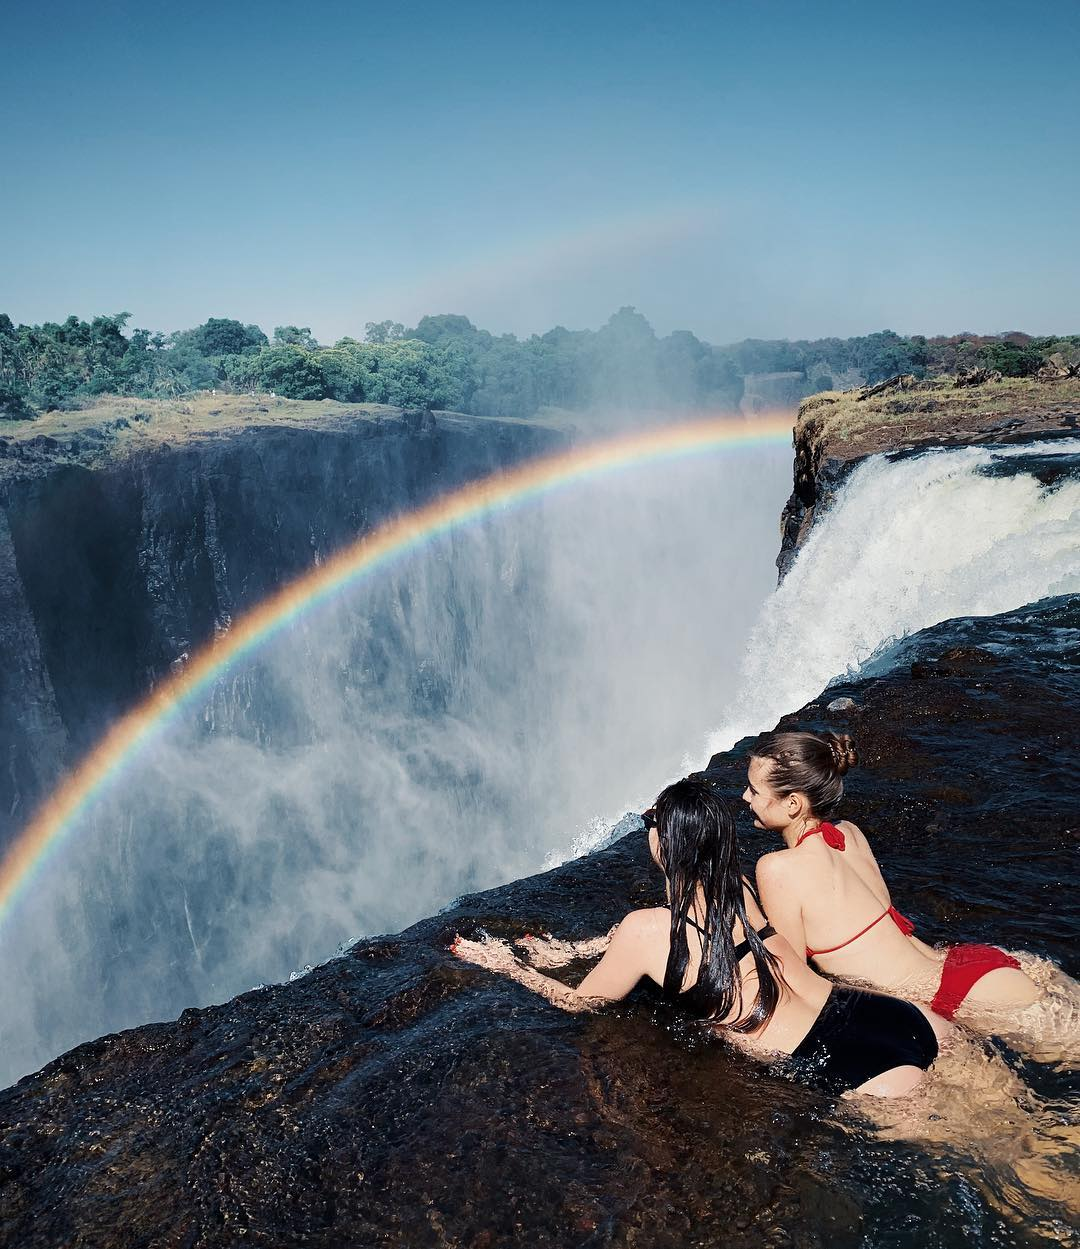 whens the best time to visit Zimbabwe